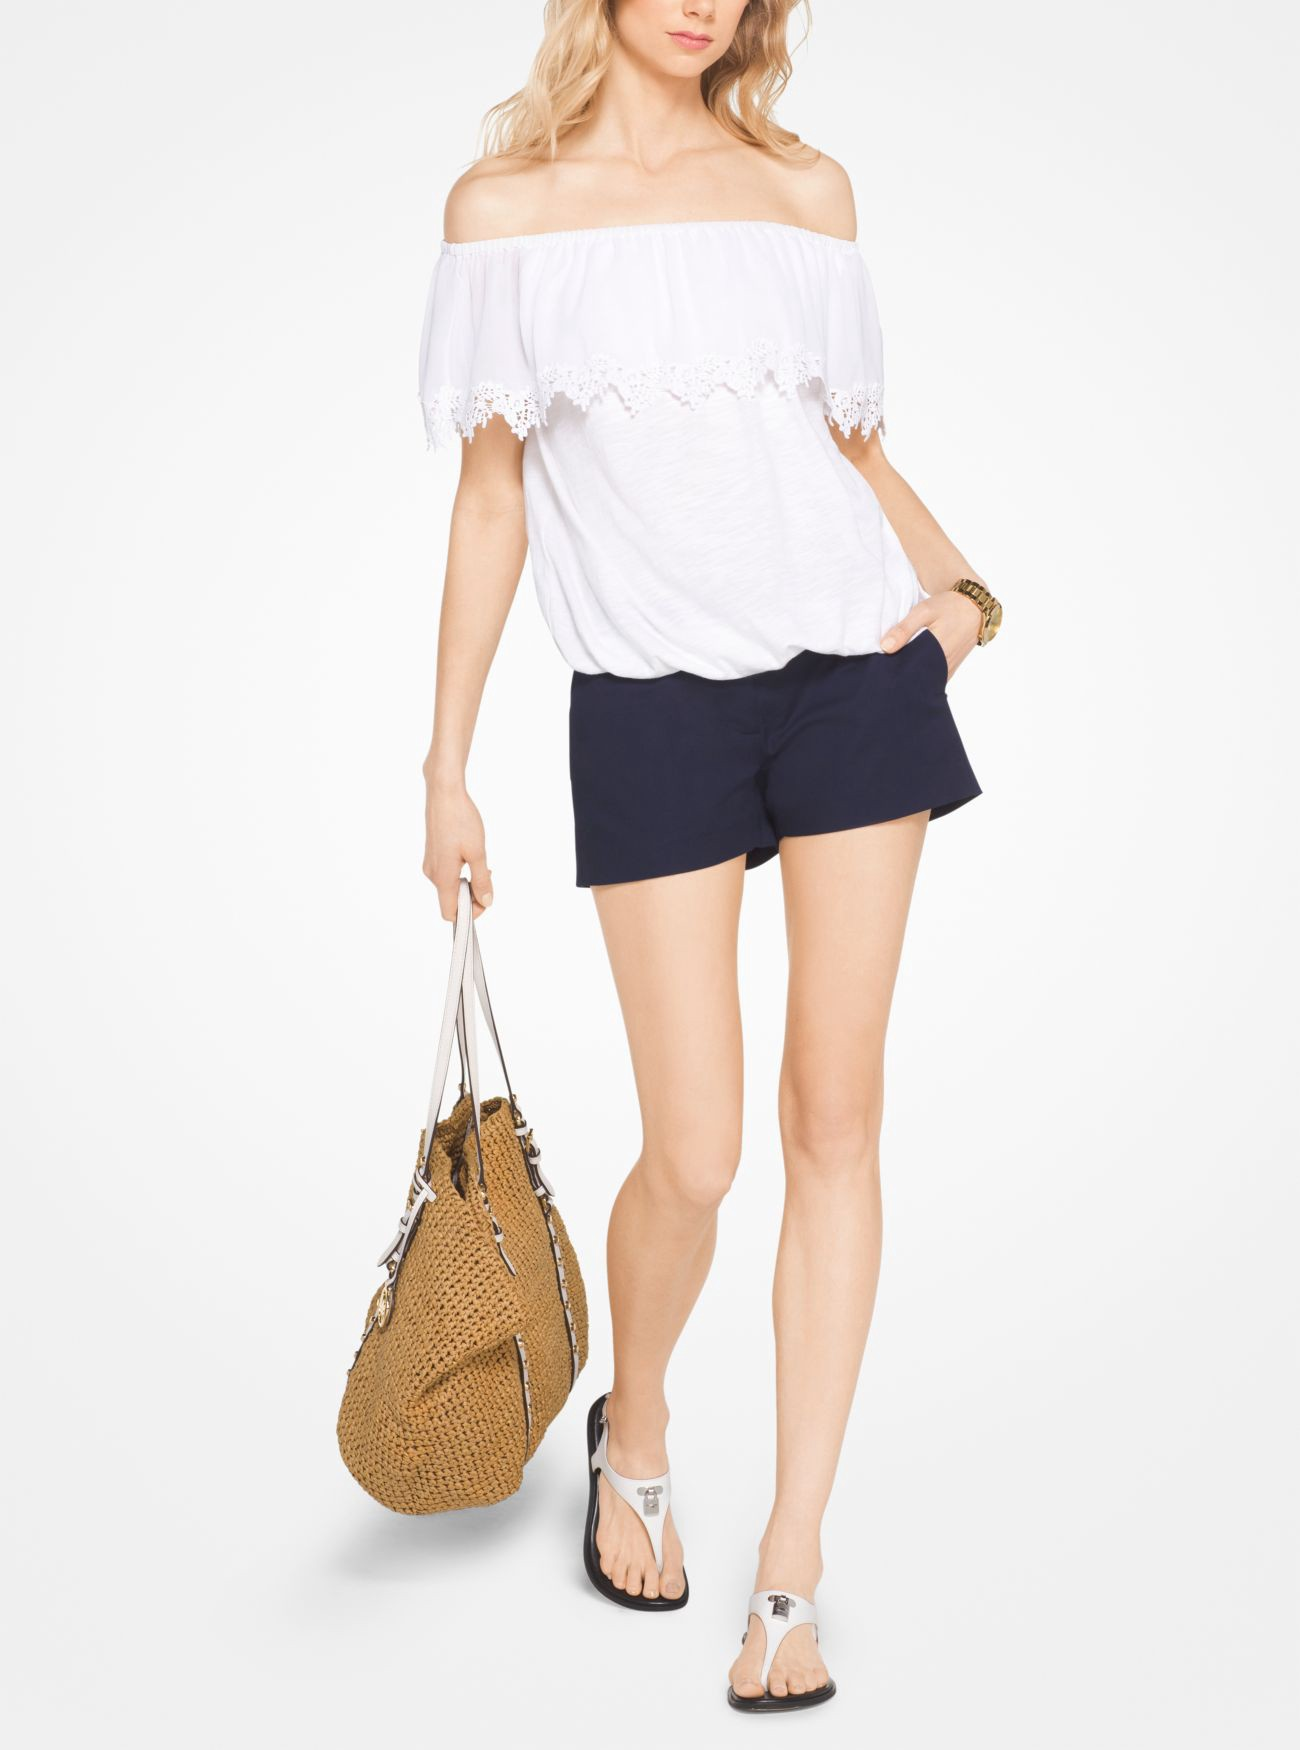 MICHAEL KORS Cotton Off-The-Shoulder Top in White